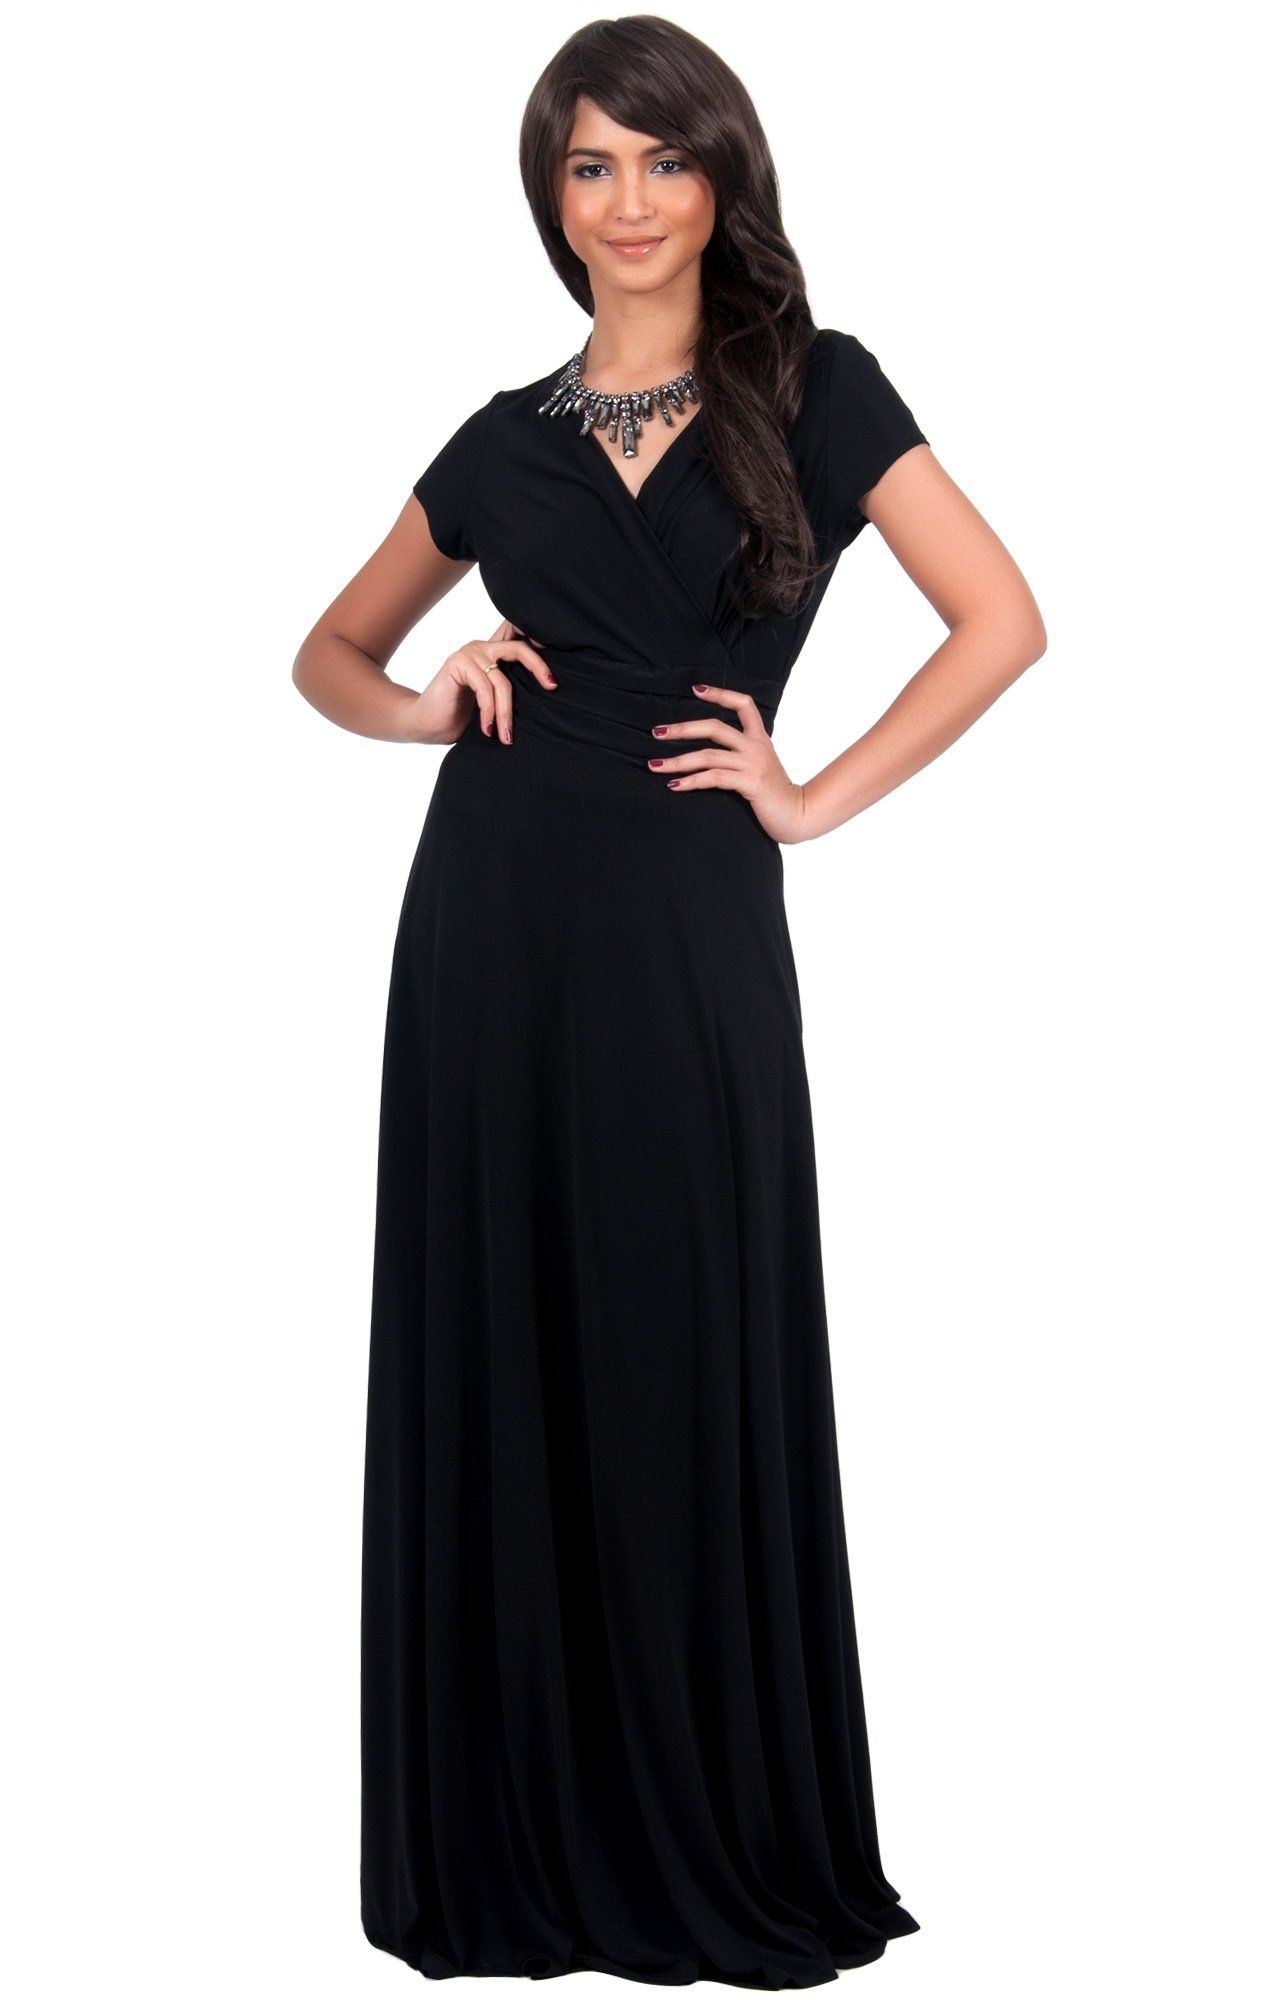 0ae9c06028 Koh Koh Women s Elegant Cap Sleeve Chest Crossover Cocktail Long Maxi Dress  - Large - Black